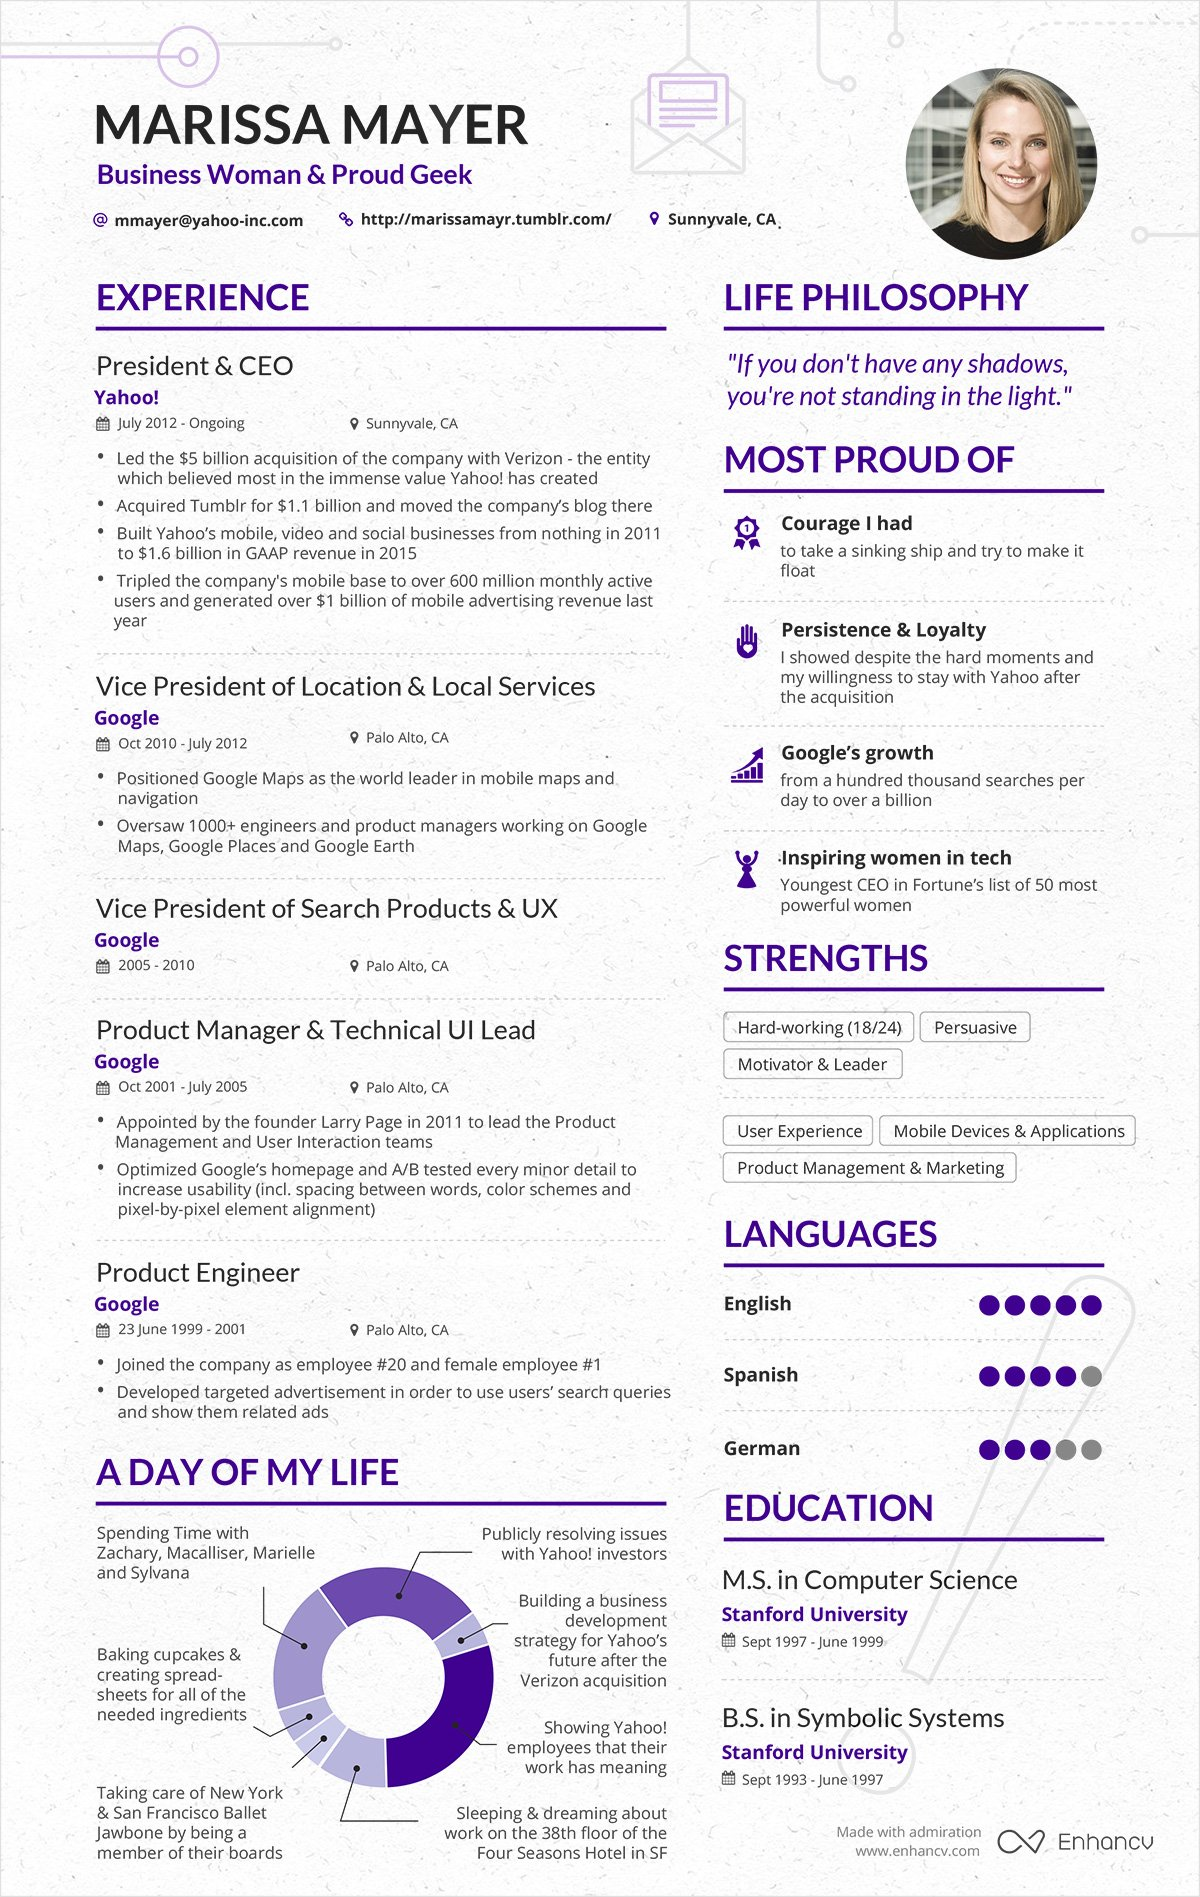 Resume Builder Yahoo Most Popular Of 2016 1 Make Your Content Look As Good